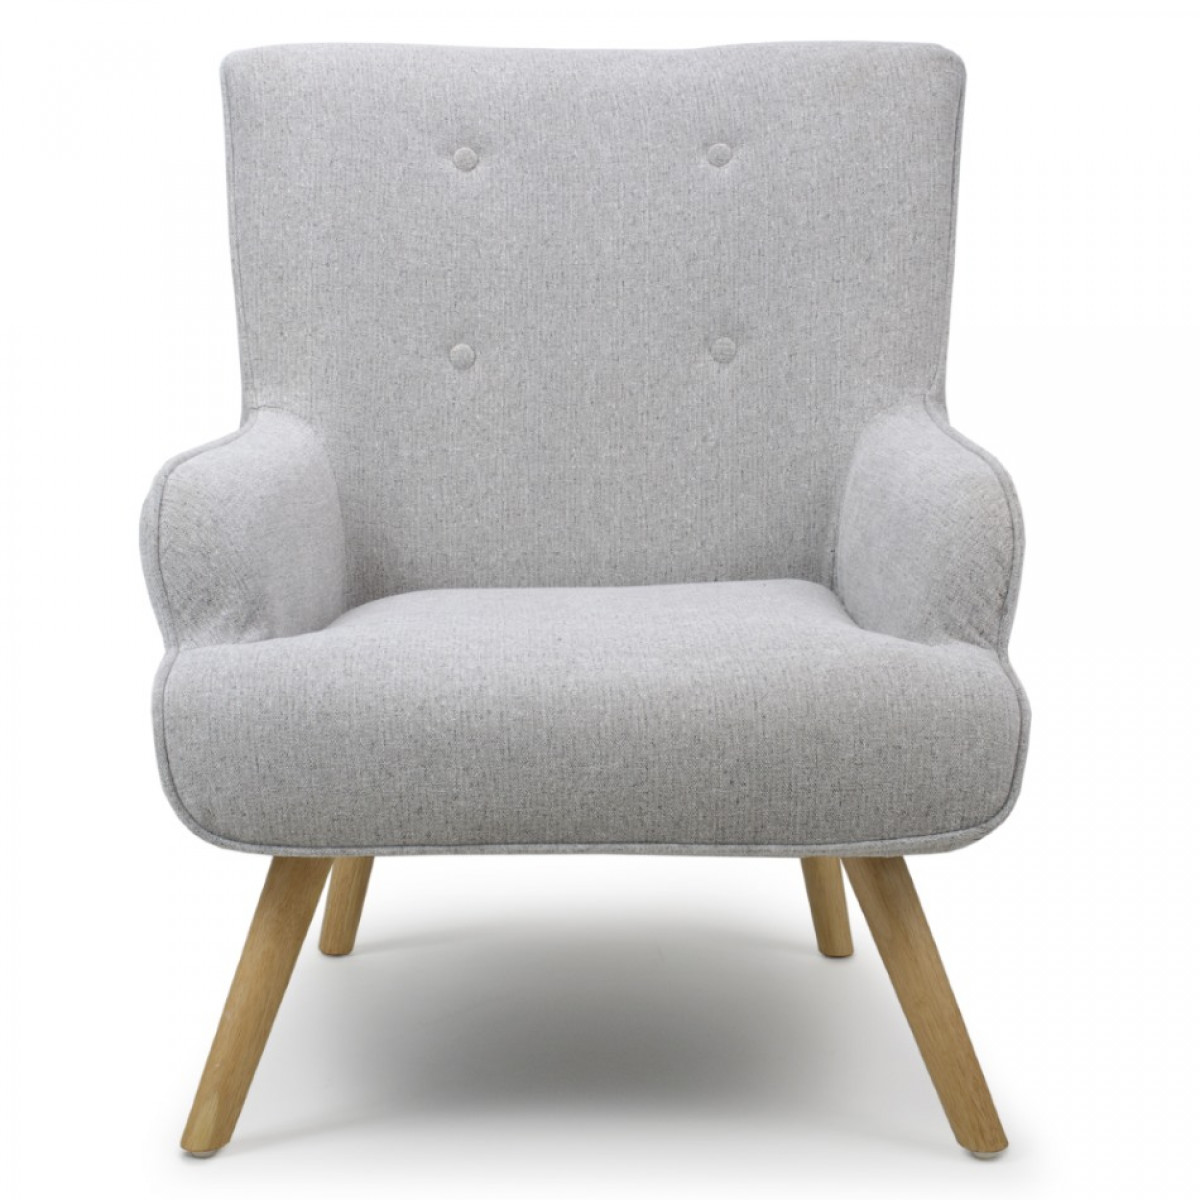 Armchairs - Shankar Cinema Armchair in Silver Grey 018-12 ...